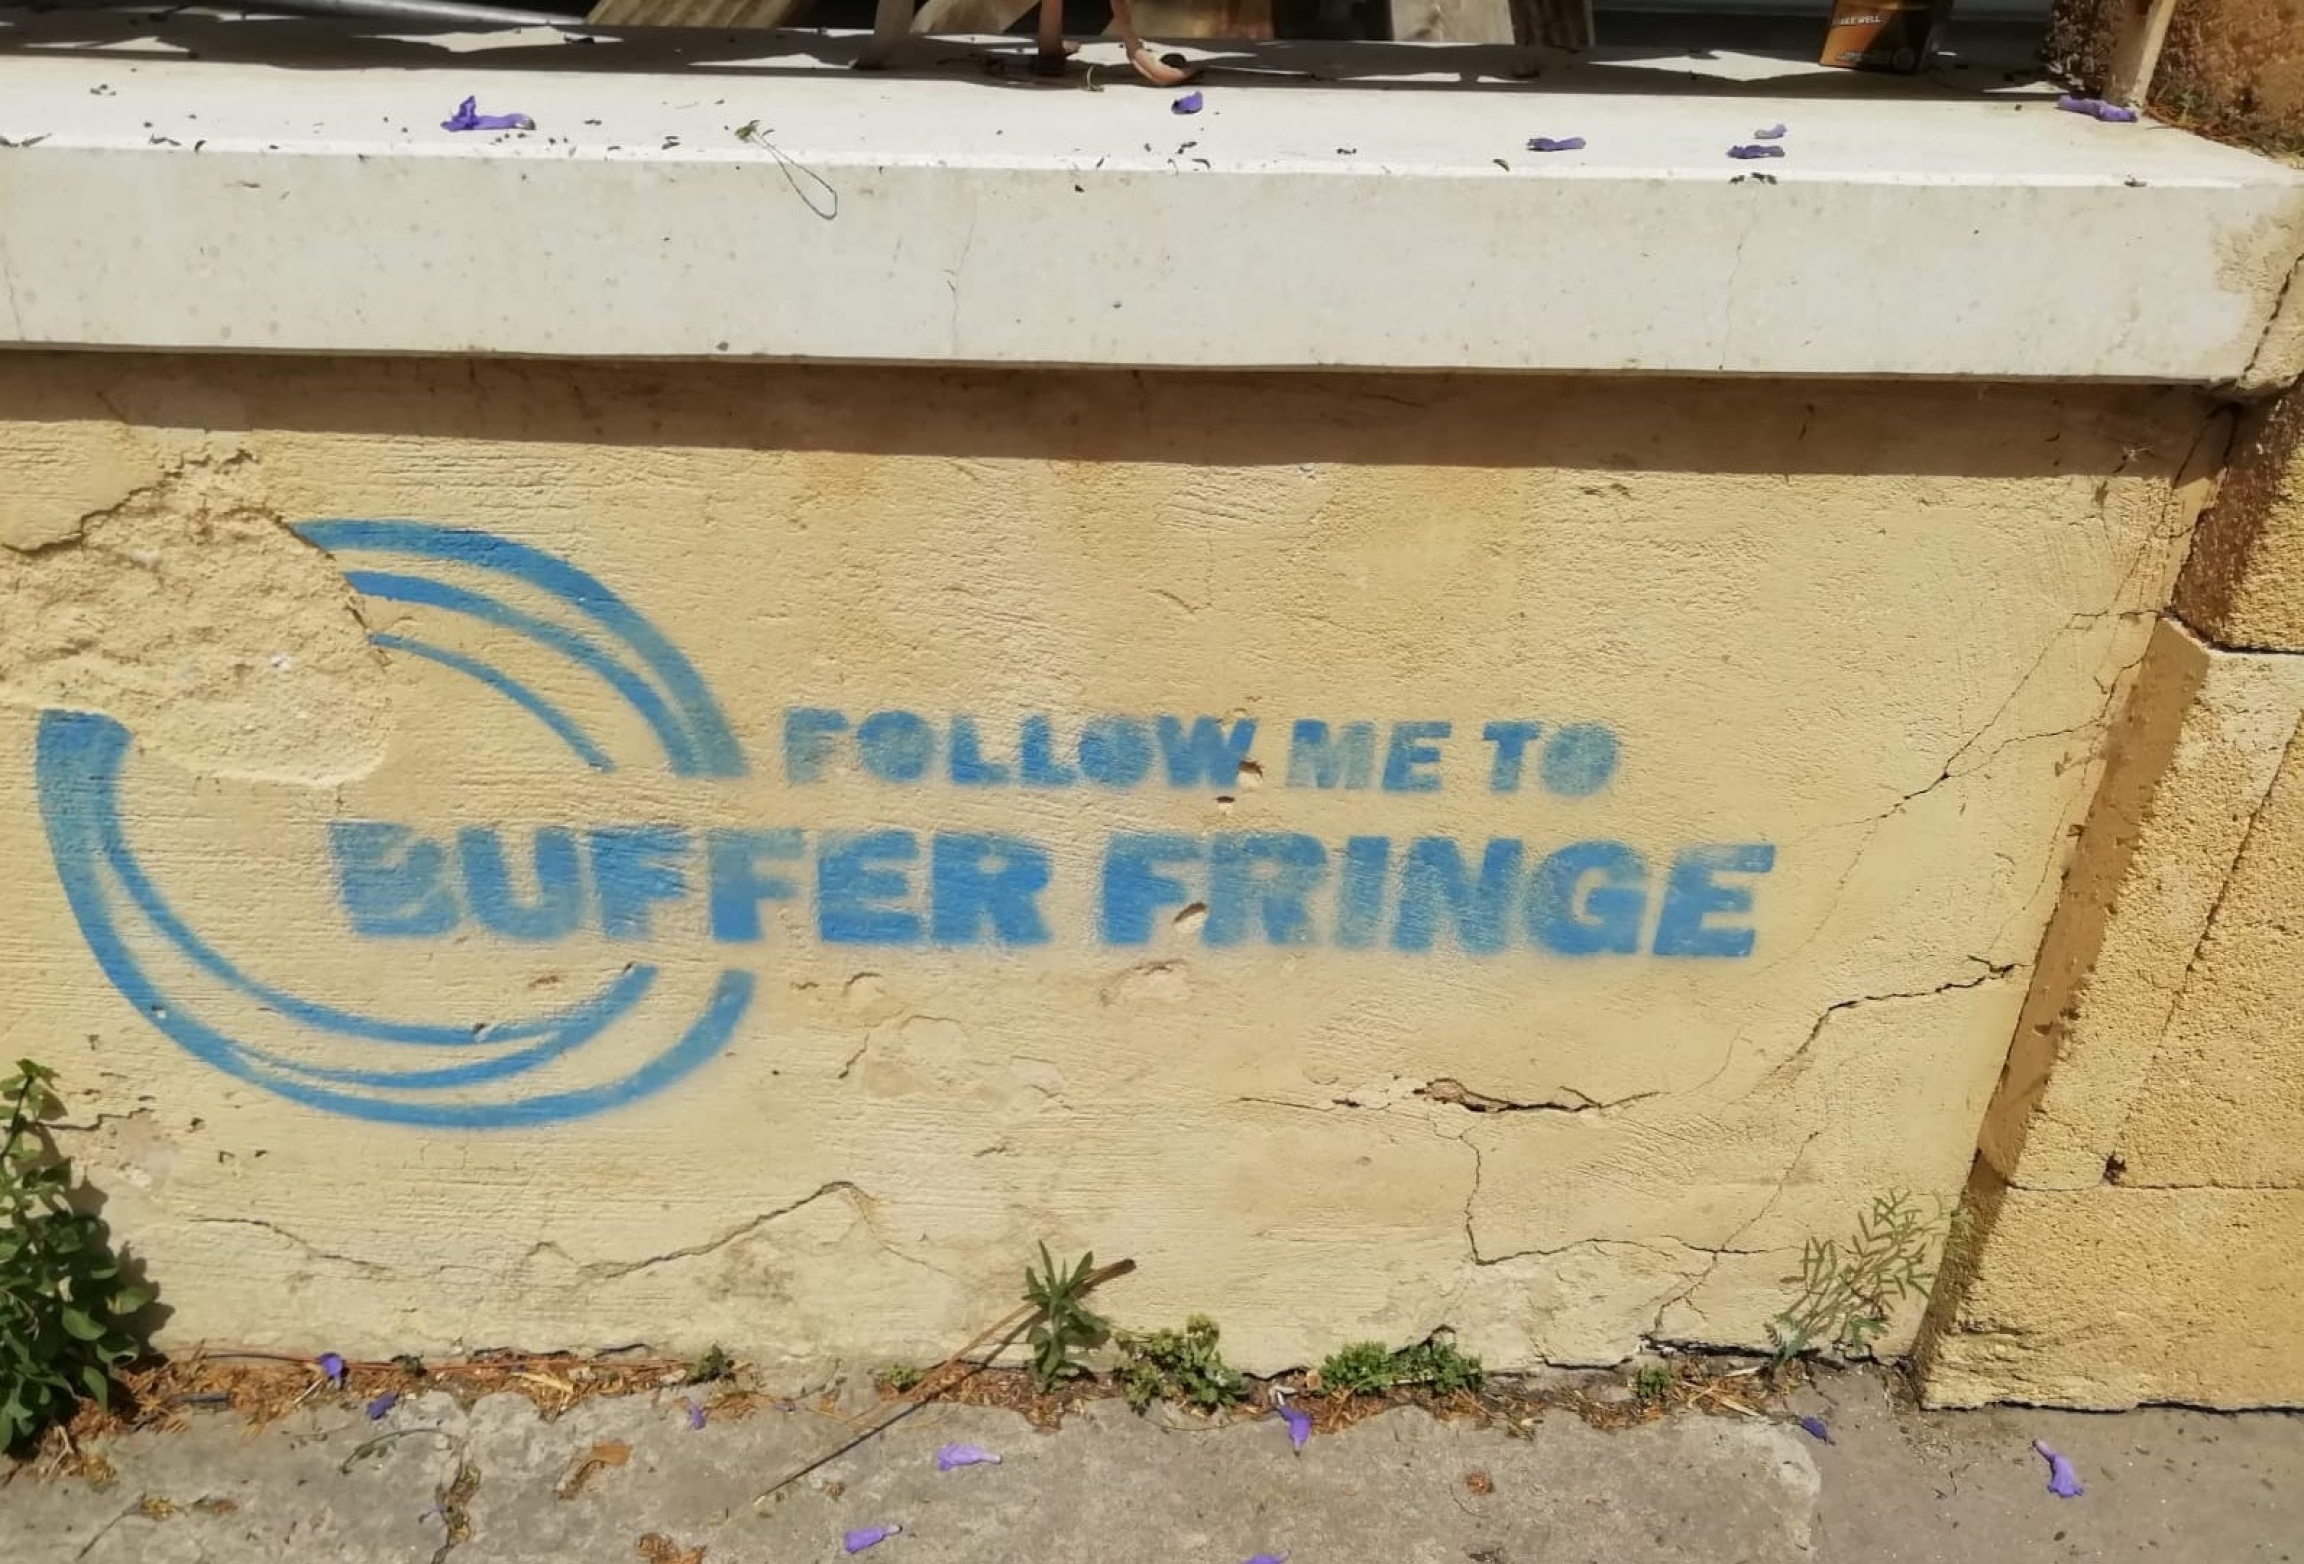 "Graffiti seen on wall in Nicosia in blue lettering reads ""Follow Me to Buffer Fringe"""